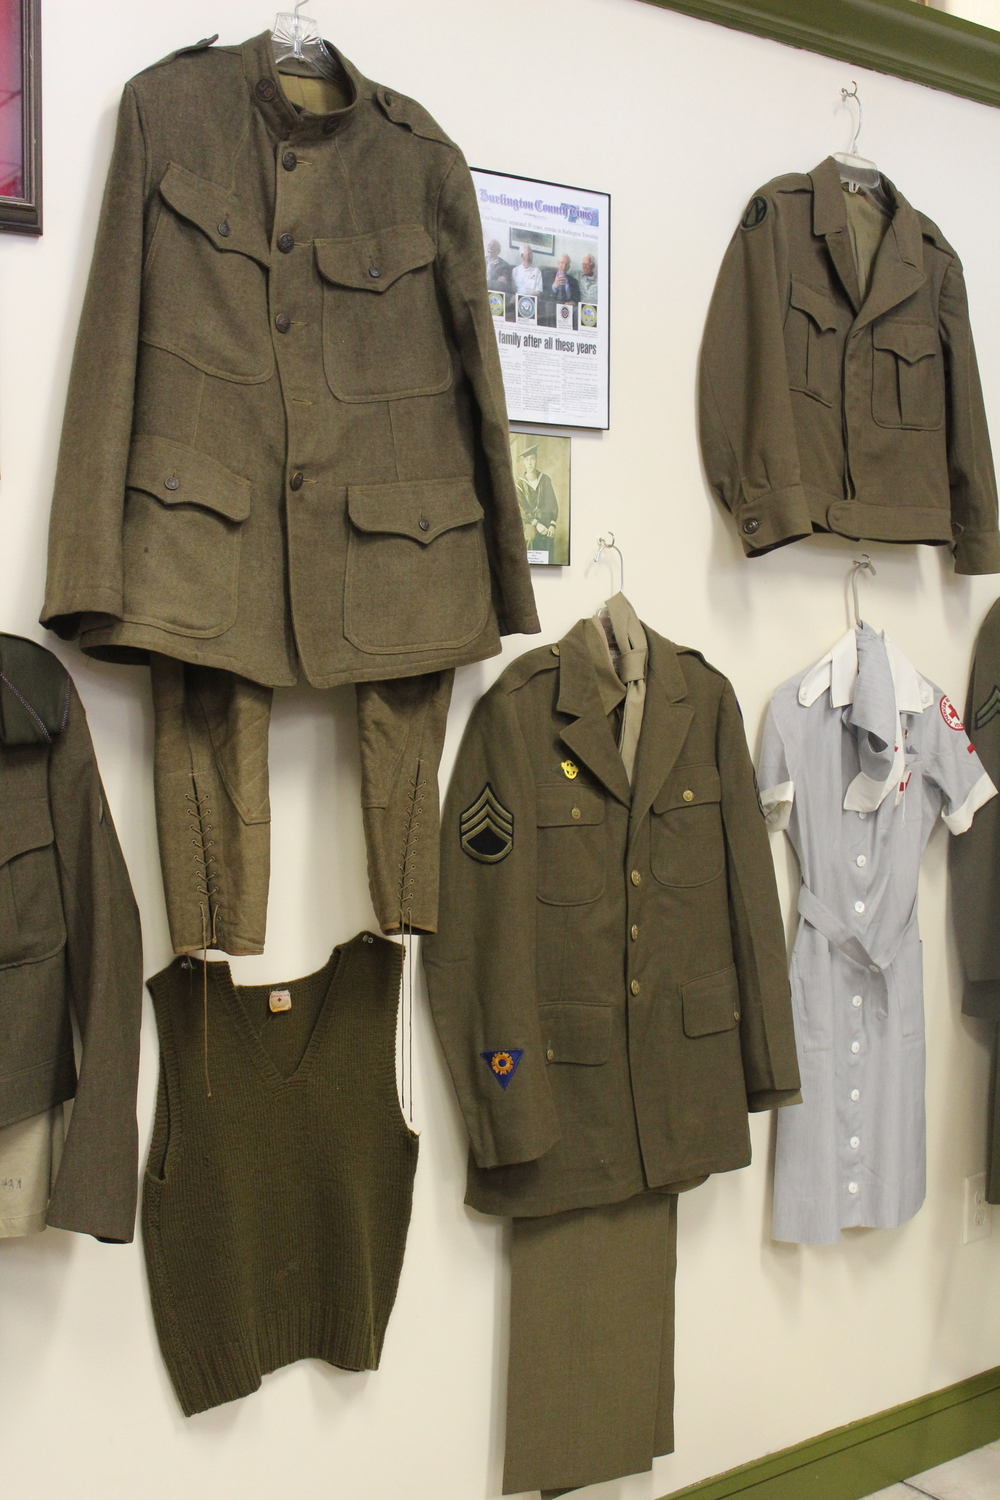 Some of the uniforms on display at the Veterans Cafe & Grille. The one on the upper left dates back to World War I.